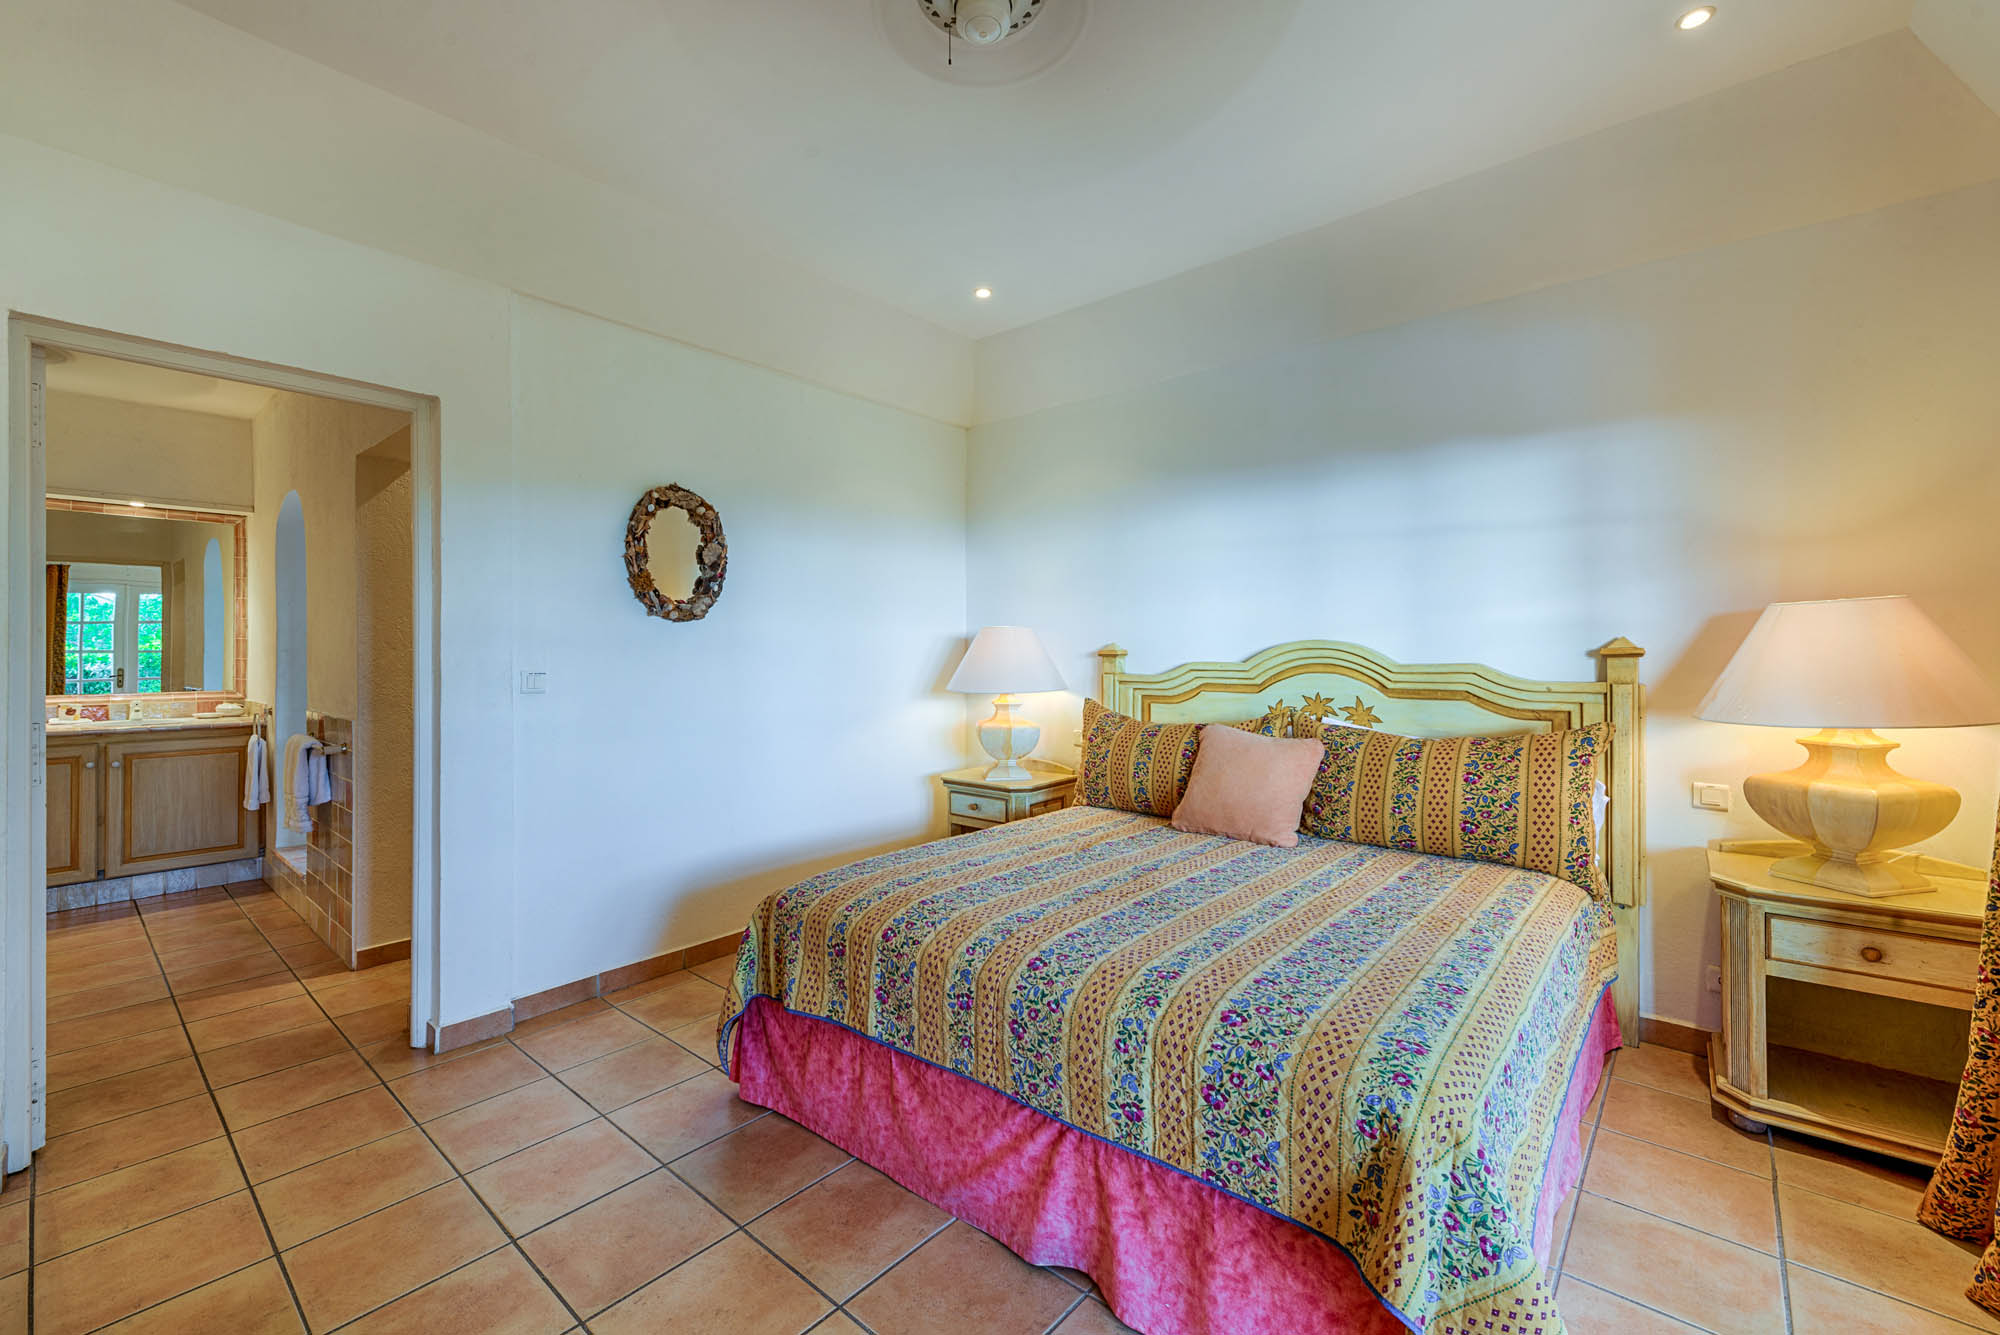 Each bedroom features a king size bed, air conditioning, french doors and ceiling fans.